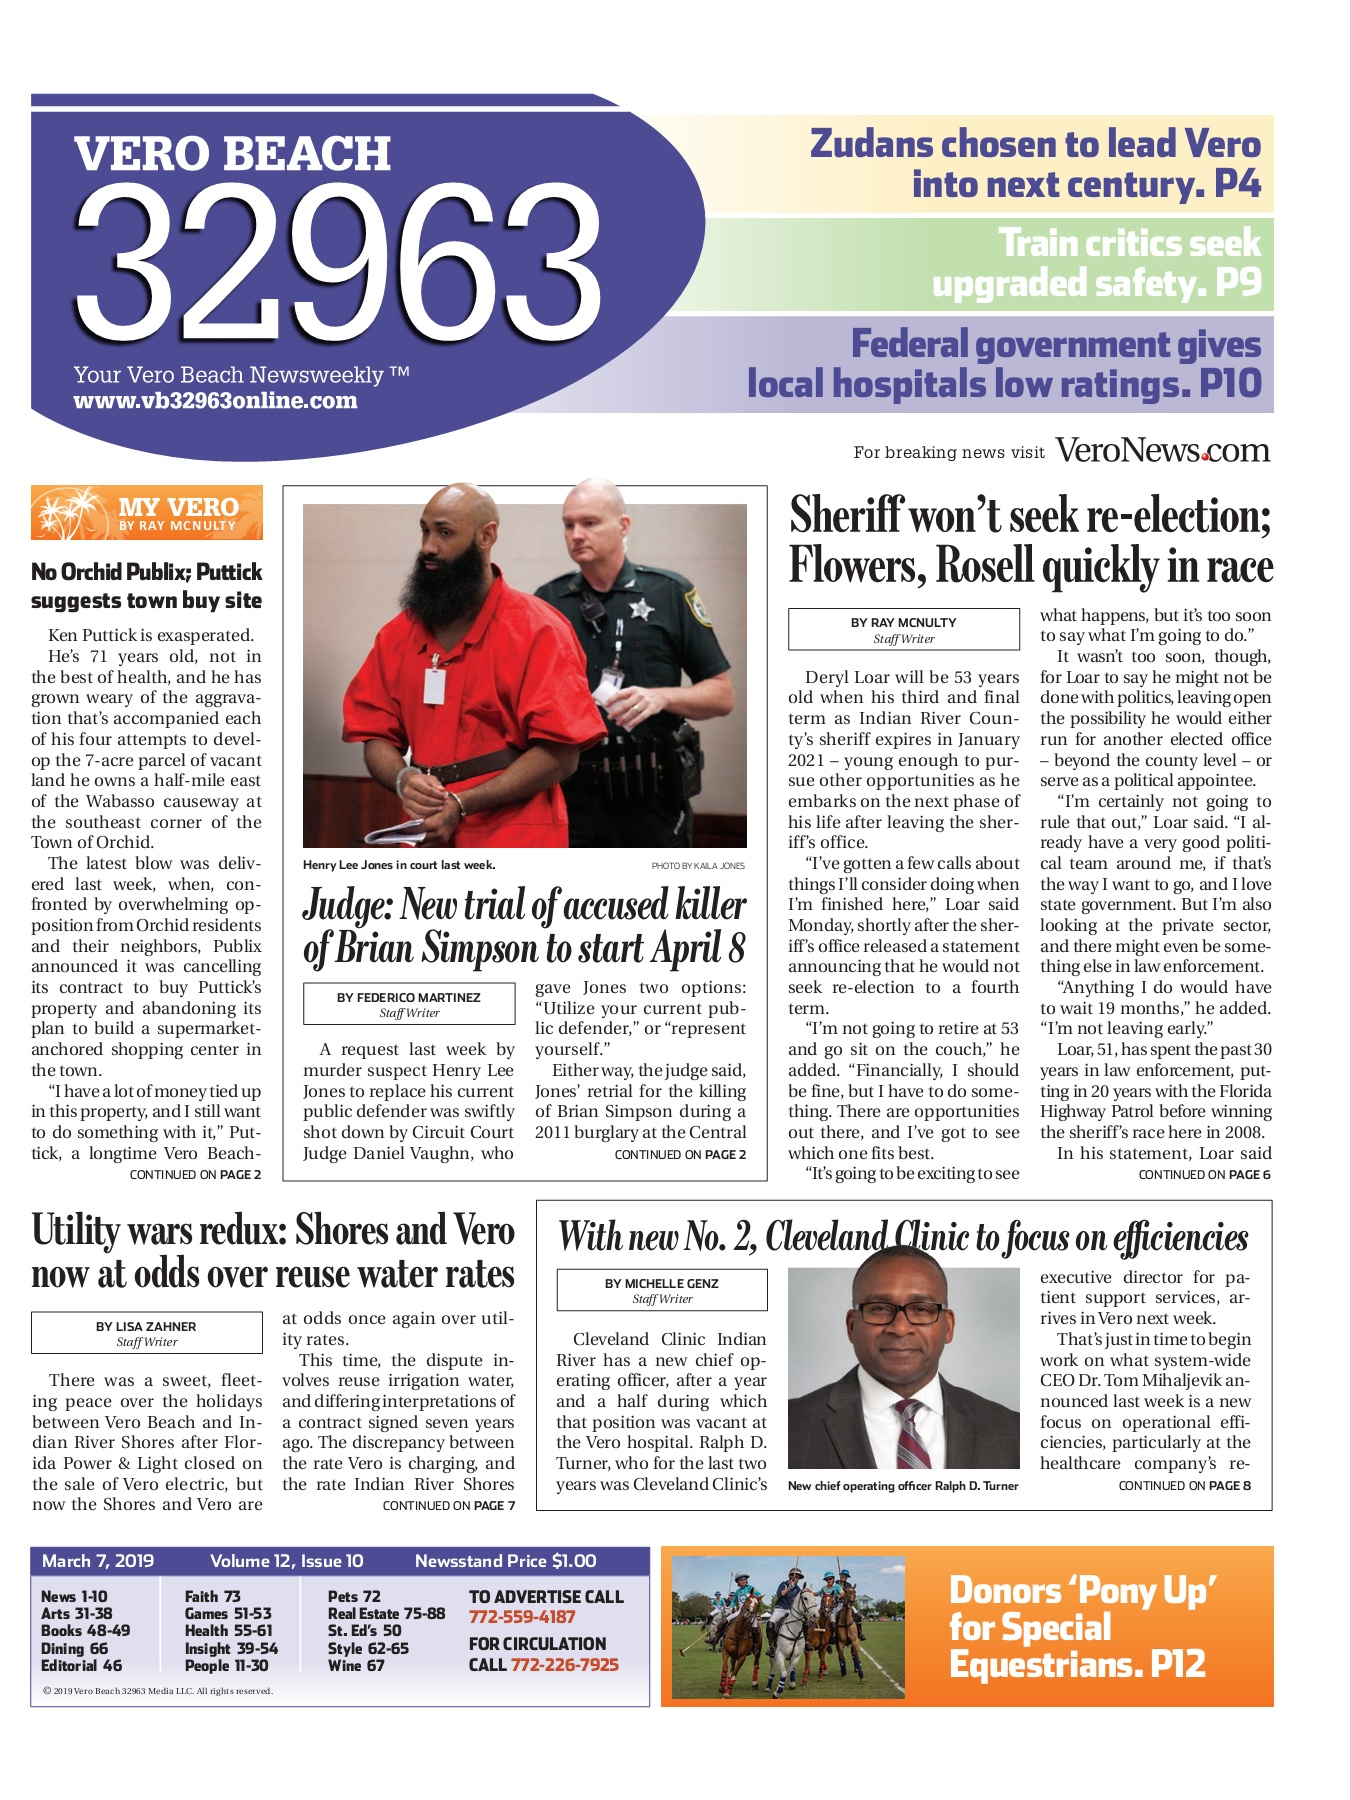 03/07/2019 ISSUE 10 Pages 1 - 50 - Text Version | AnyFlip